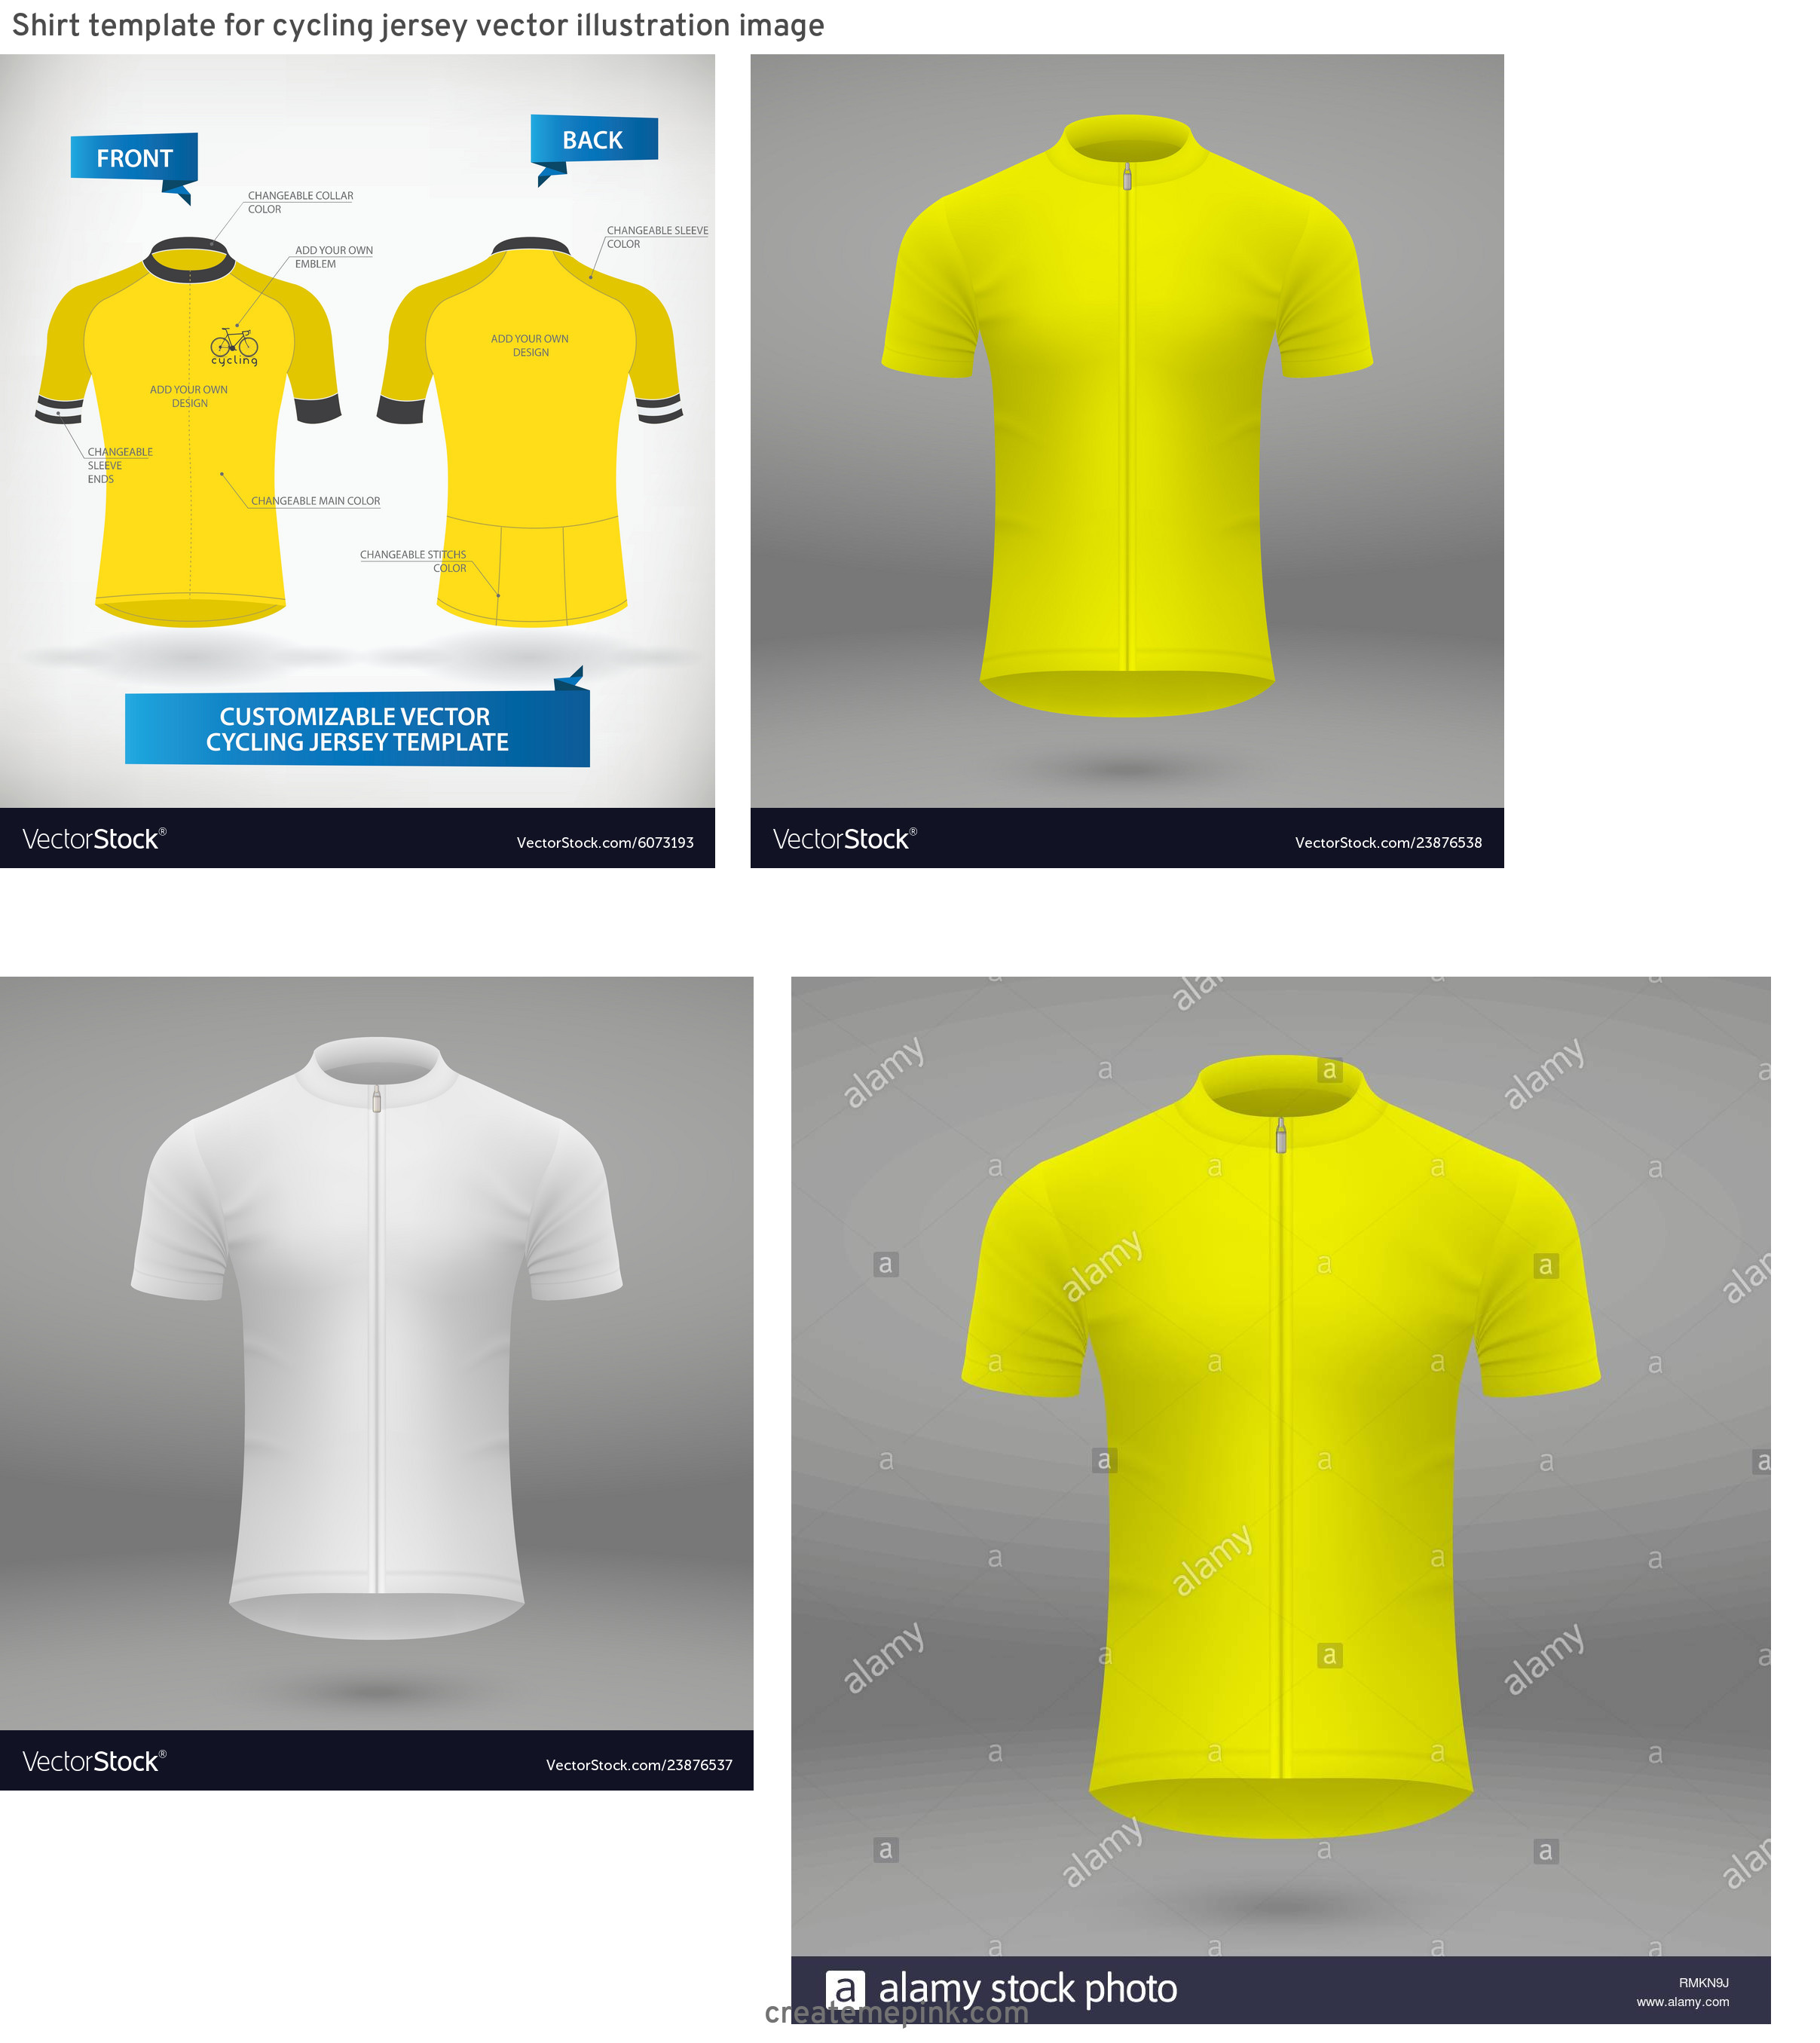 Cycling Kit Template Vector: Shirt Template For Cycling Jersey Vector Illustration Image